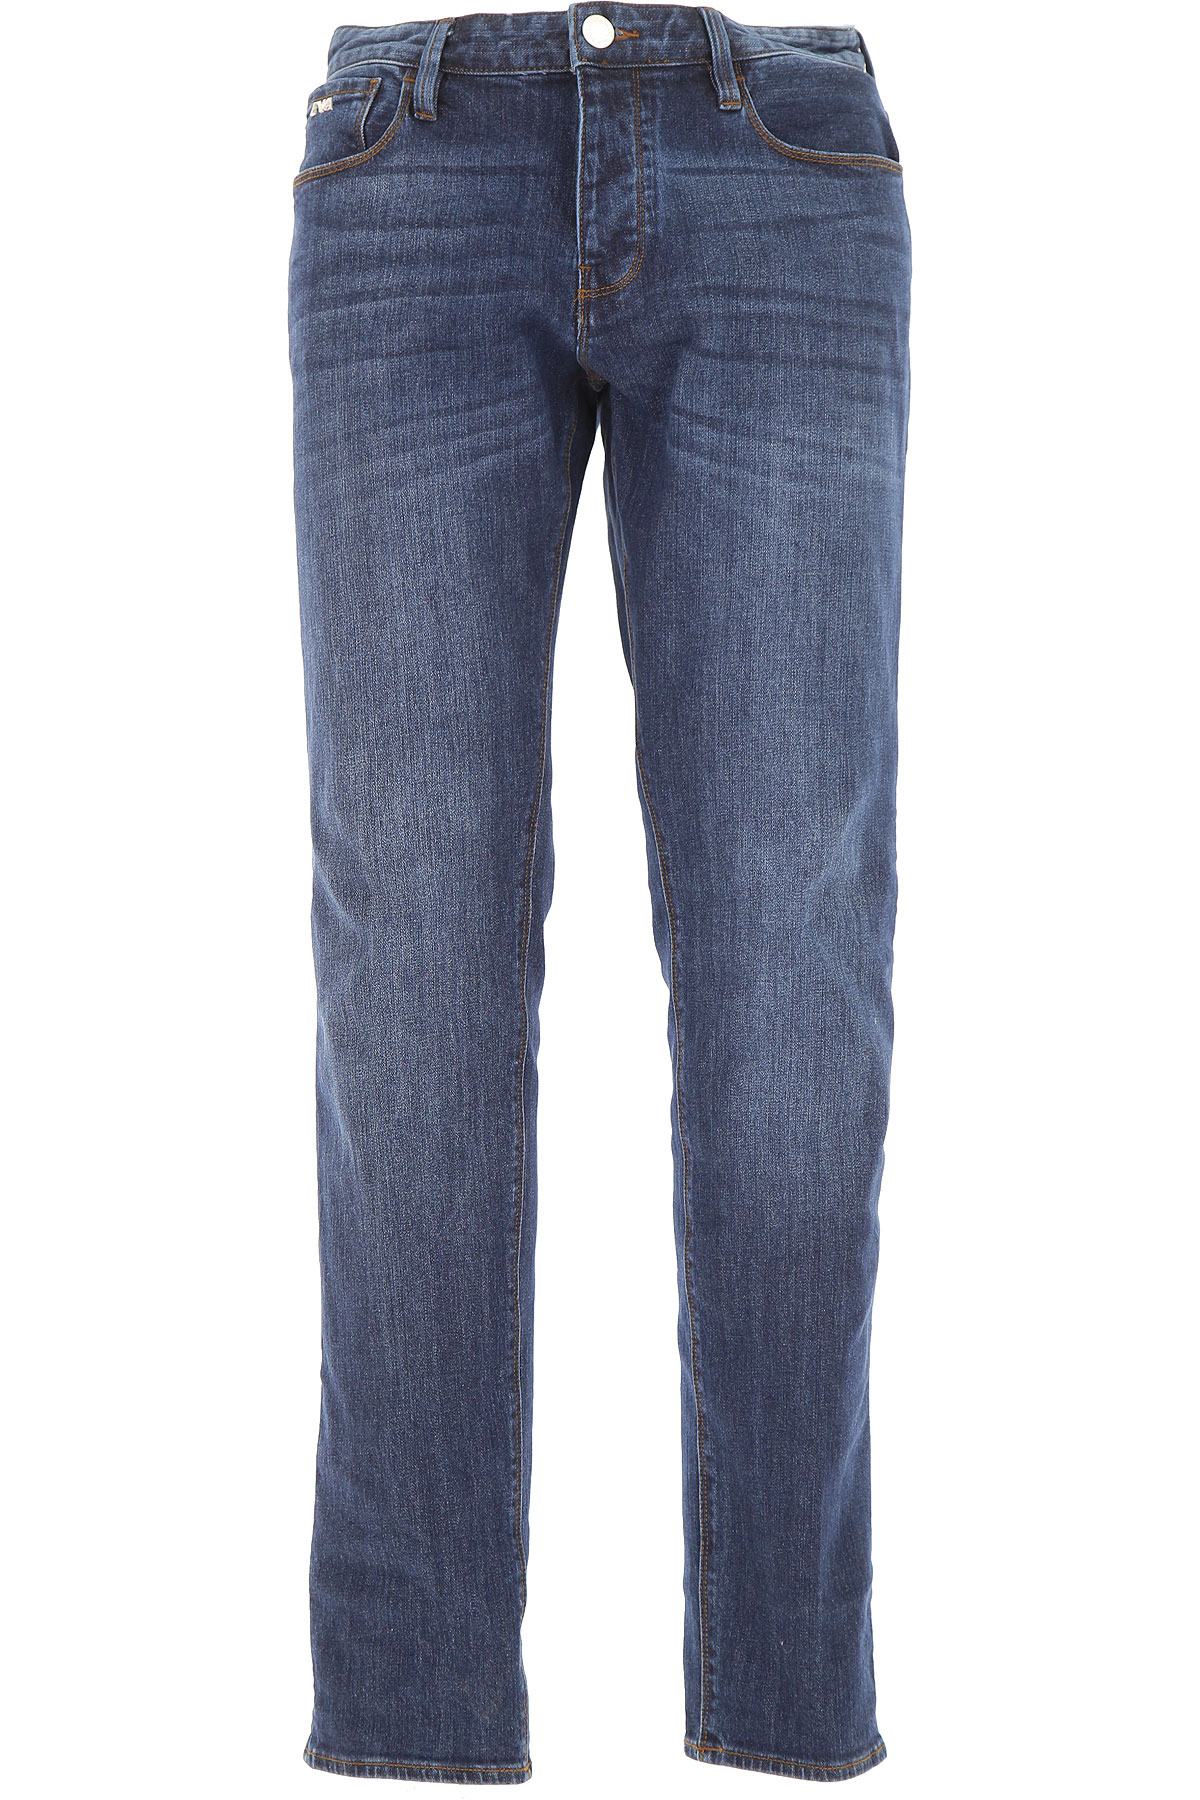 Emporio Armani Jeans, Denim, Cotton, 2017, 30 32 33 34 35 36